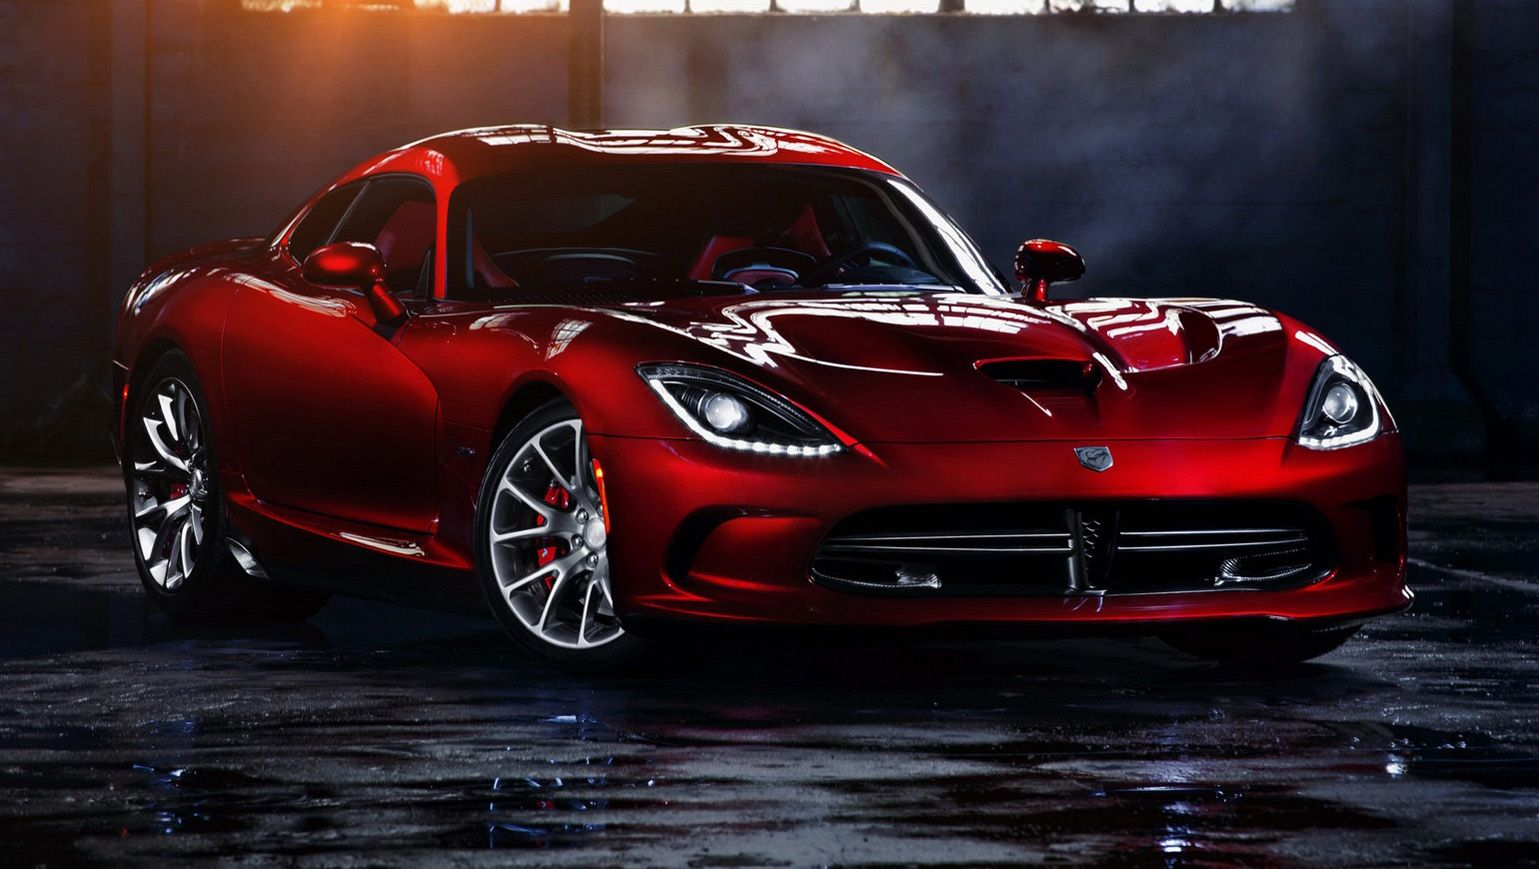 2013 Srt Viper With A 640 Hp V 10 And A Body Made Of Magnesium Aluminum And Carbon Fiber We Re Expecting Greatness Fr Dodge Viper Viper Gts Dodge Viper Gts